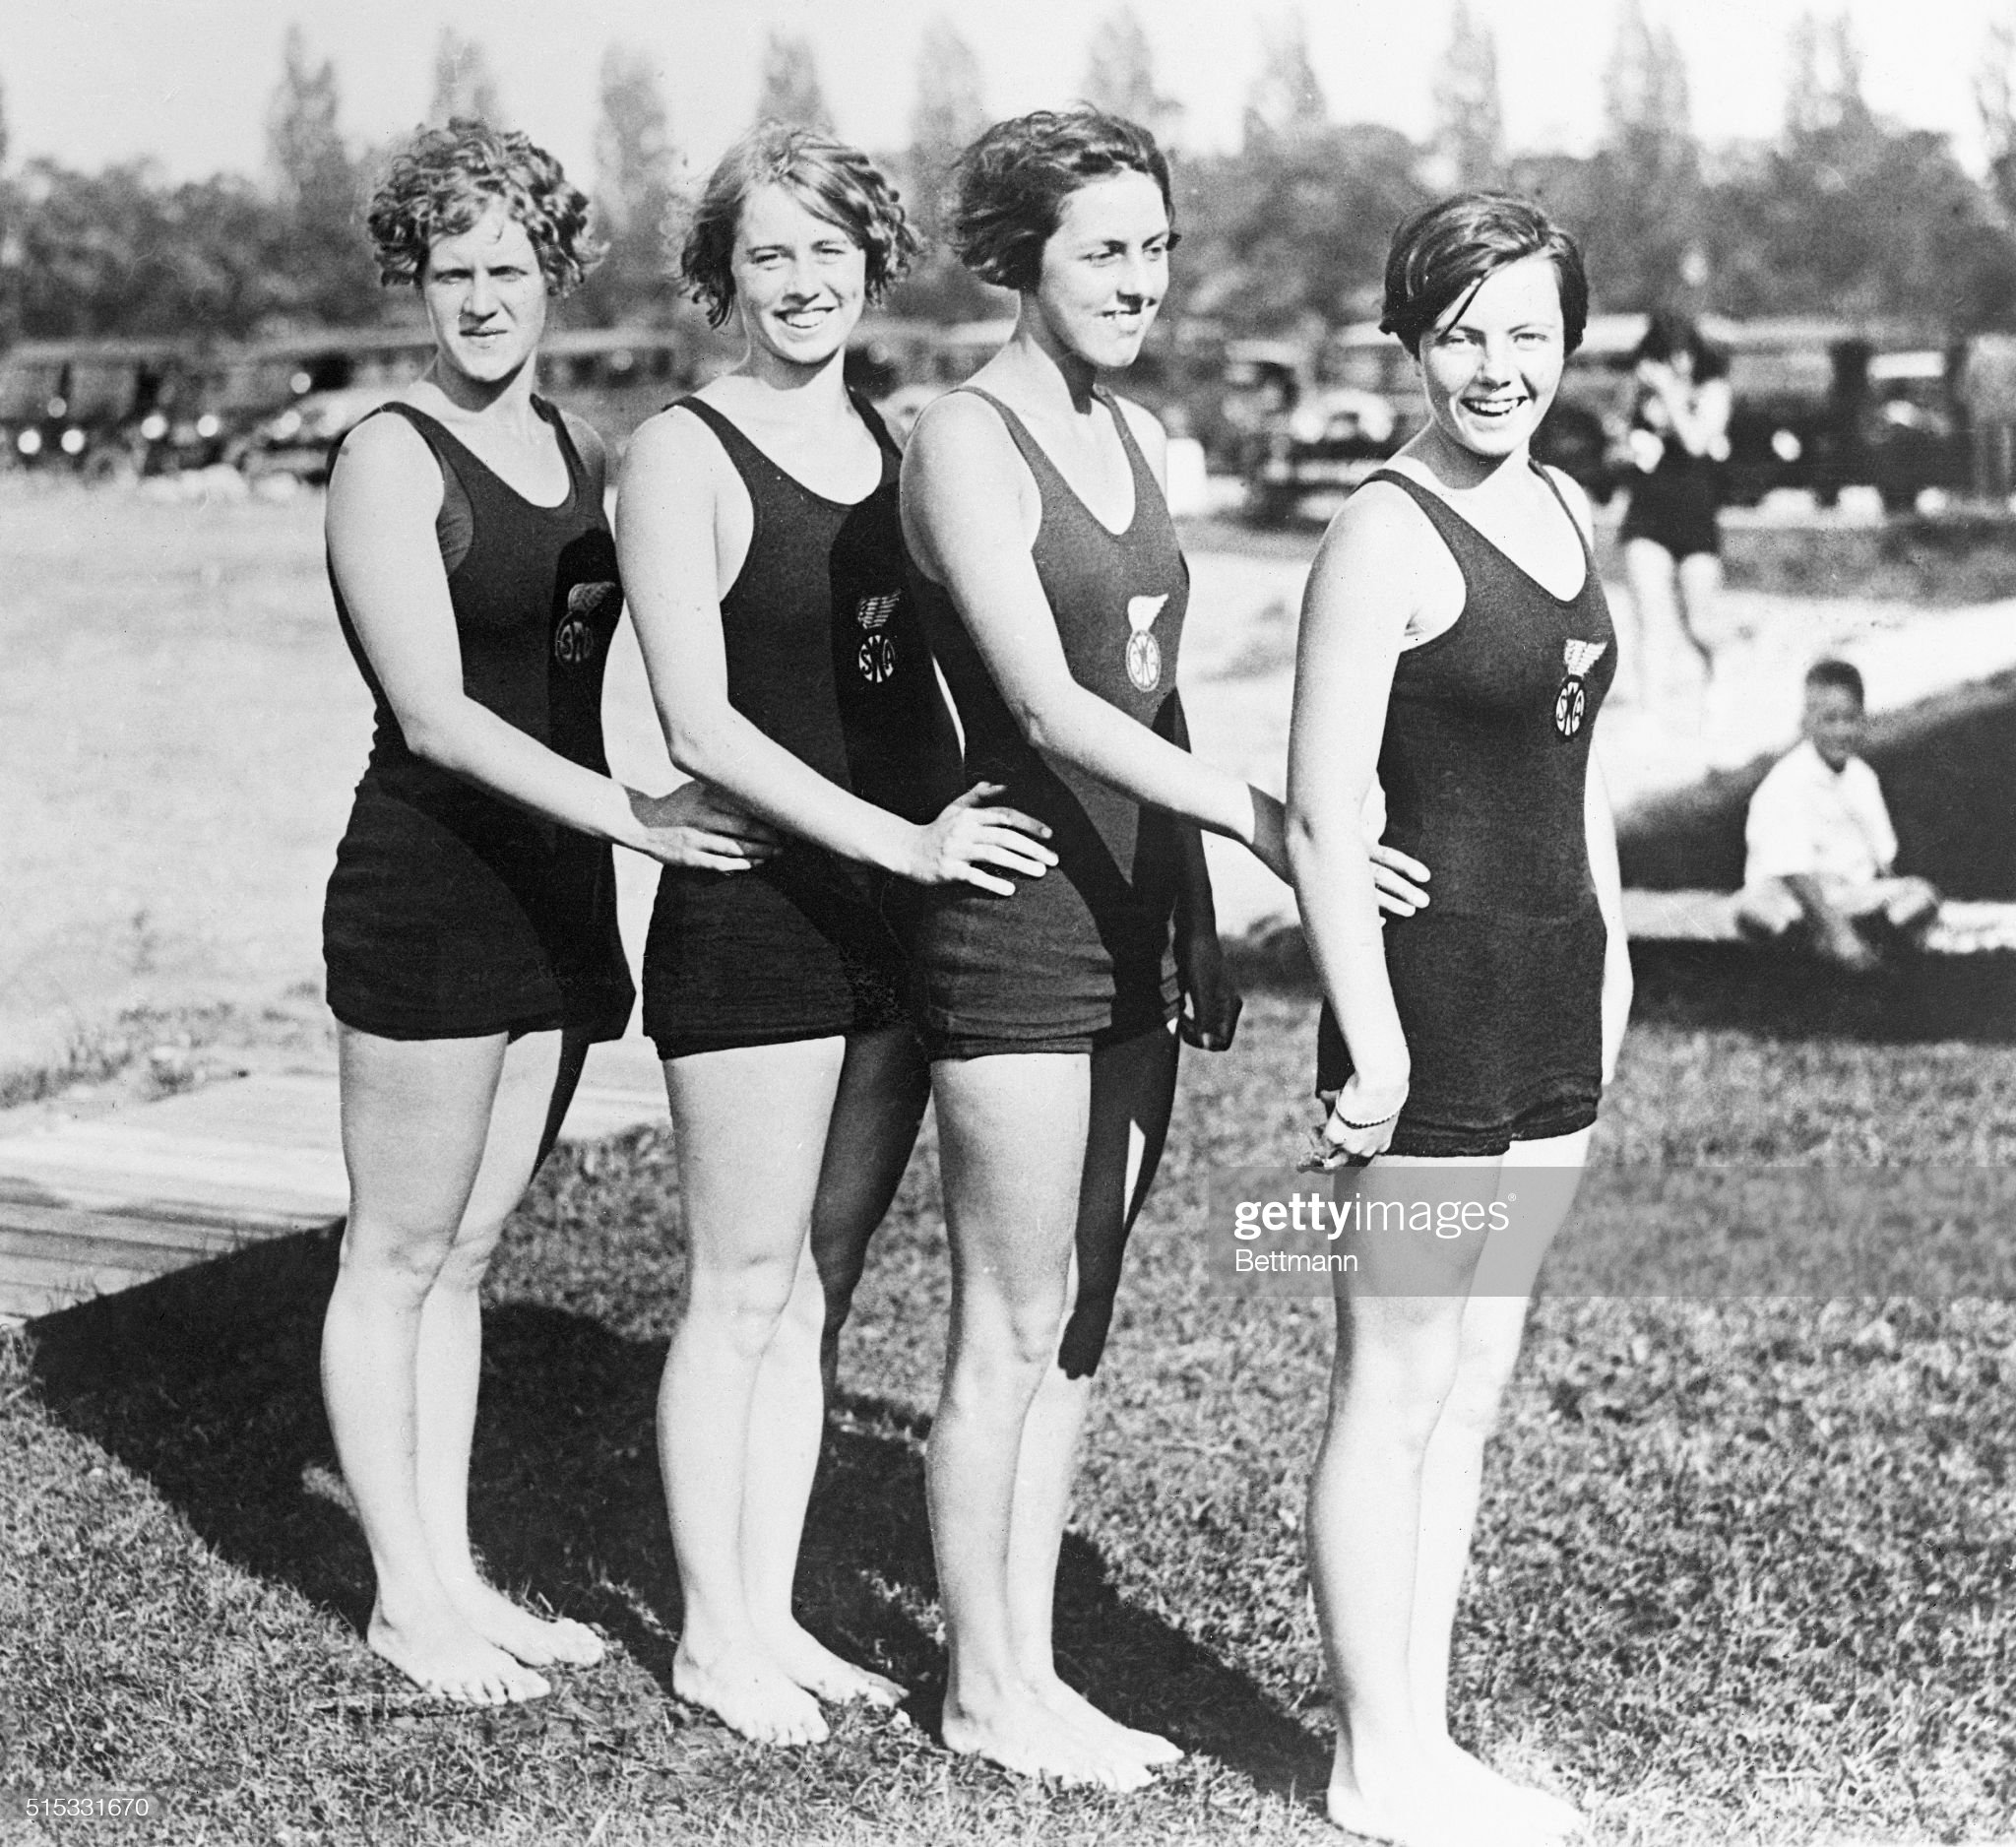 Women Swim Team Posing Together : News Photo